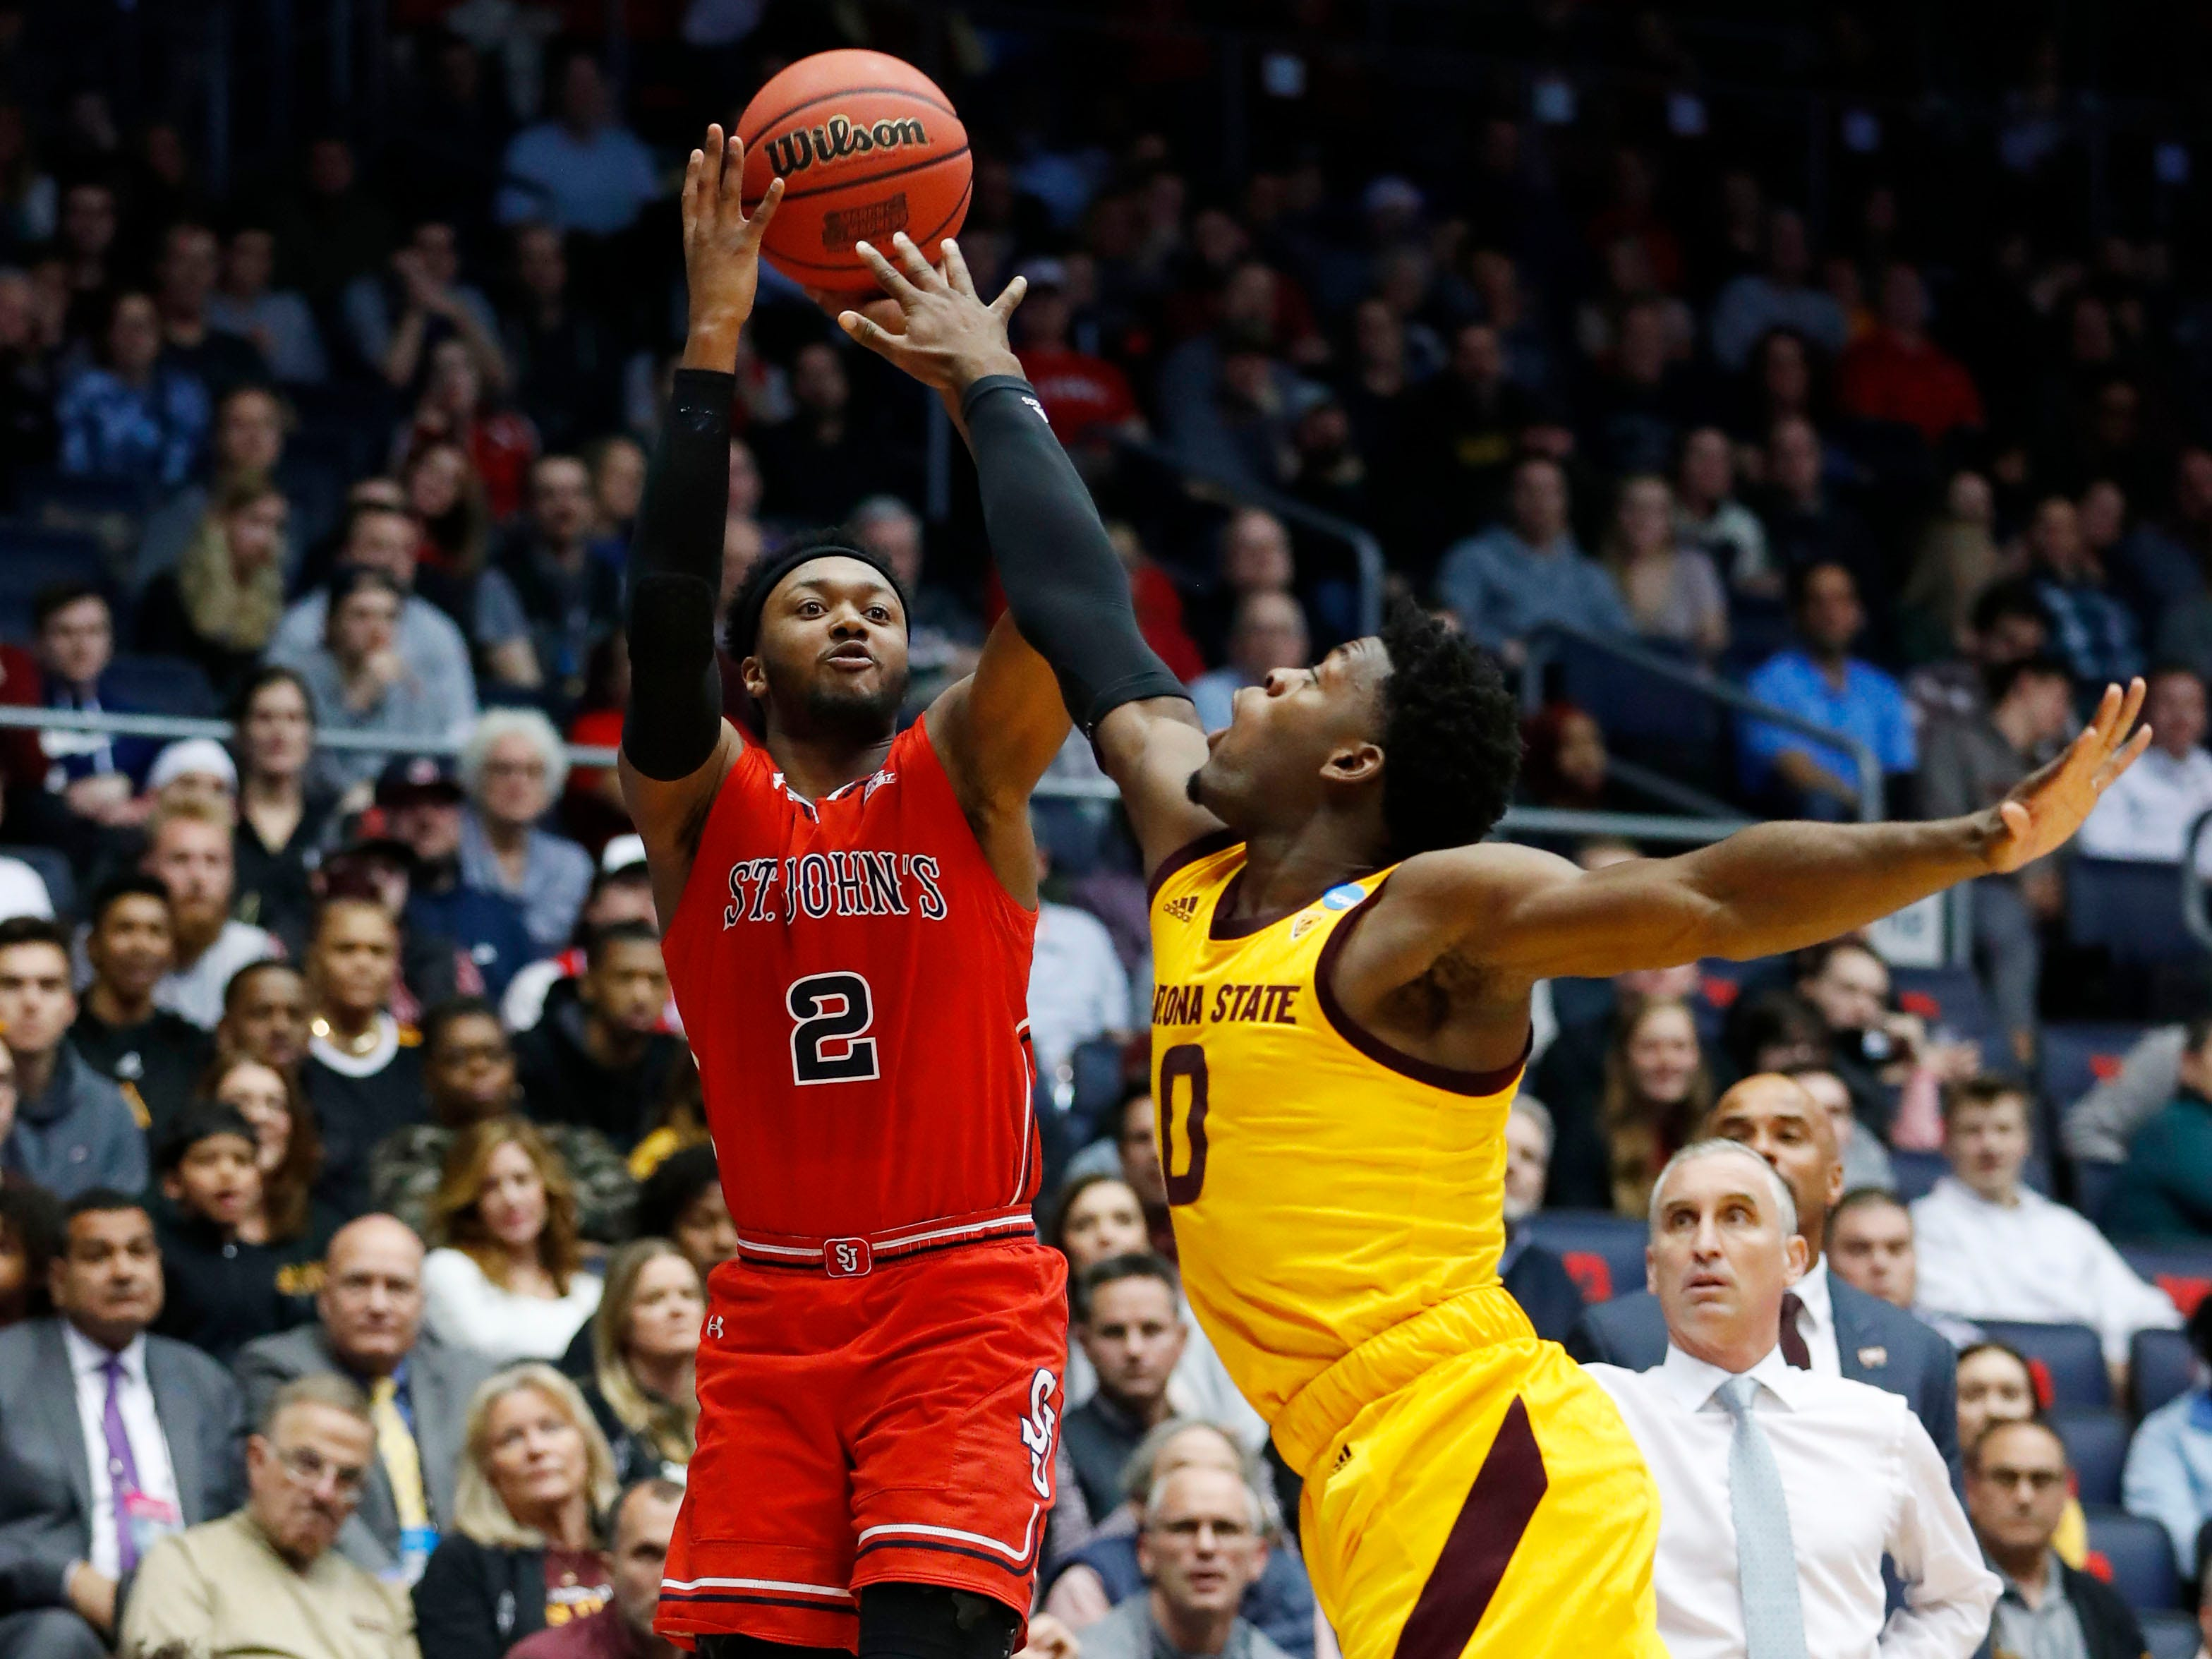 Mar 20, 2019; Dayton, OH, USA; St. John's Red Storm guard Shamorie Ponds (2) shoots the ball over Arizona State Sun Devils guard Luguentz Dort (0) in the first half in the First Four of the 2019 NCAA Tournament at Dayton Arena. Mandatory Credit: Rick Osentoski-USA TODAY Sports